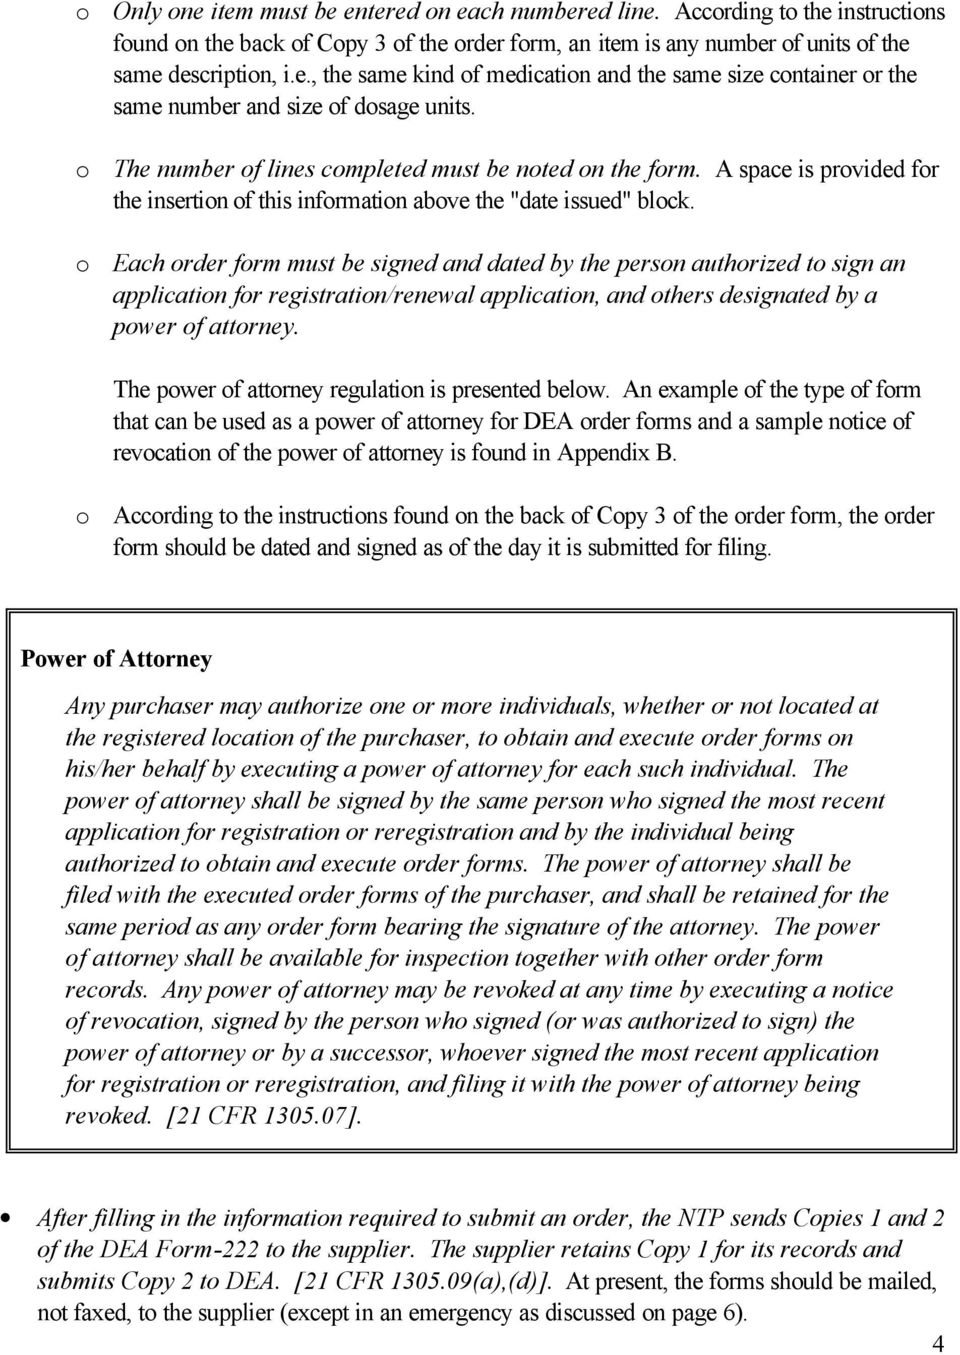 o Each order form must be signed and dated by the person authorized to sign an application for registration/renewal application, and others designated by a power of attorney.